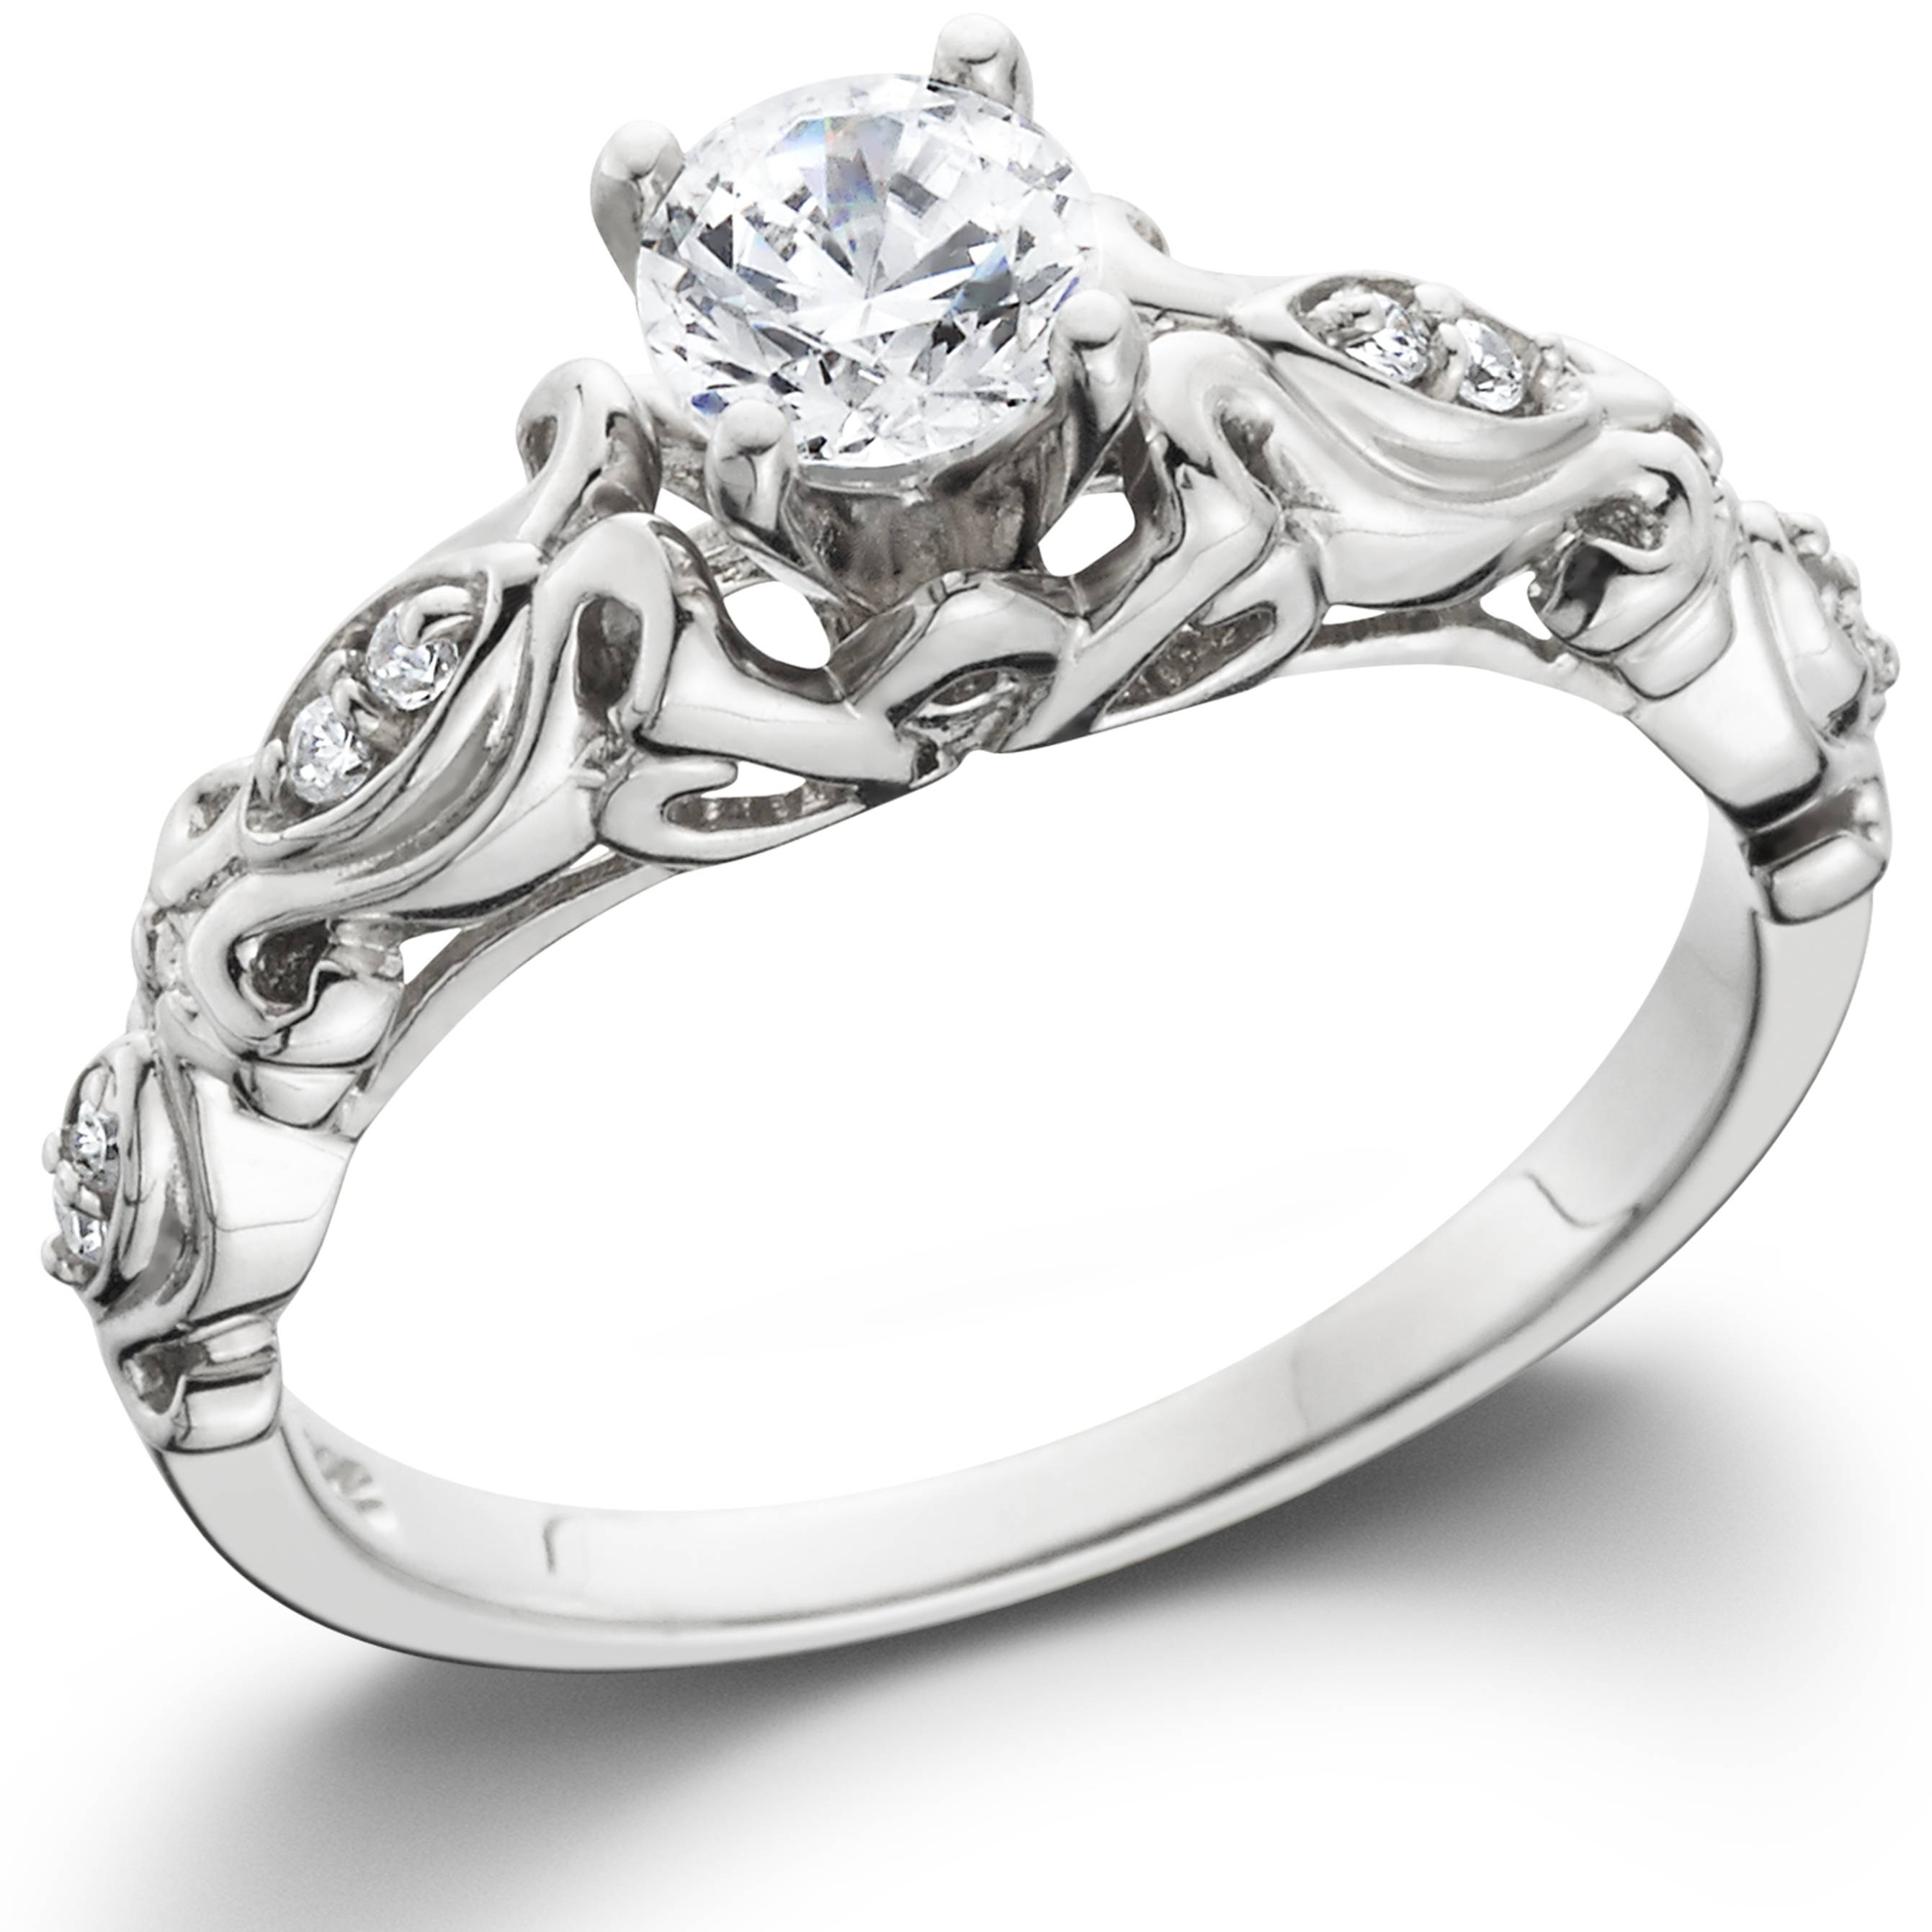 topic too karat rings big carat ring engagement